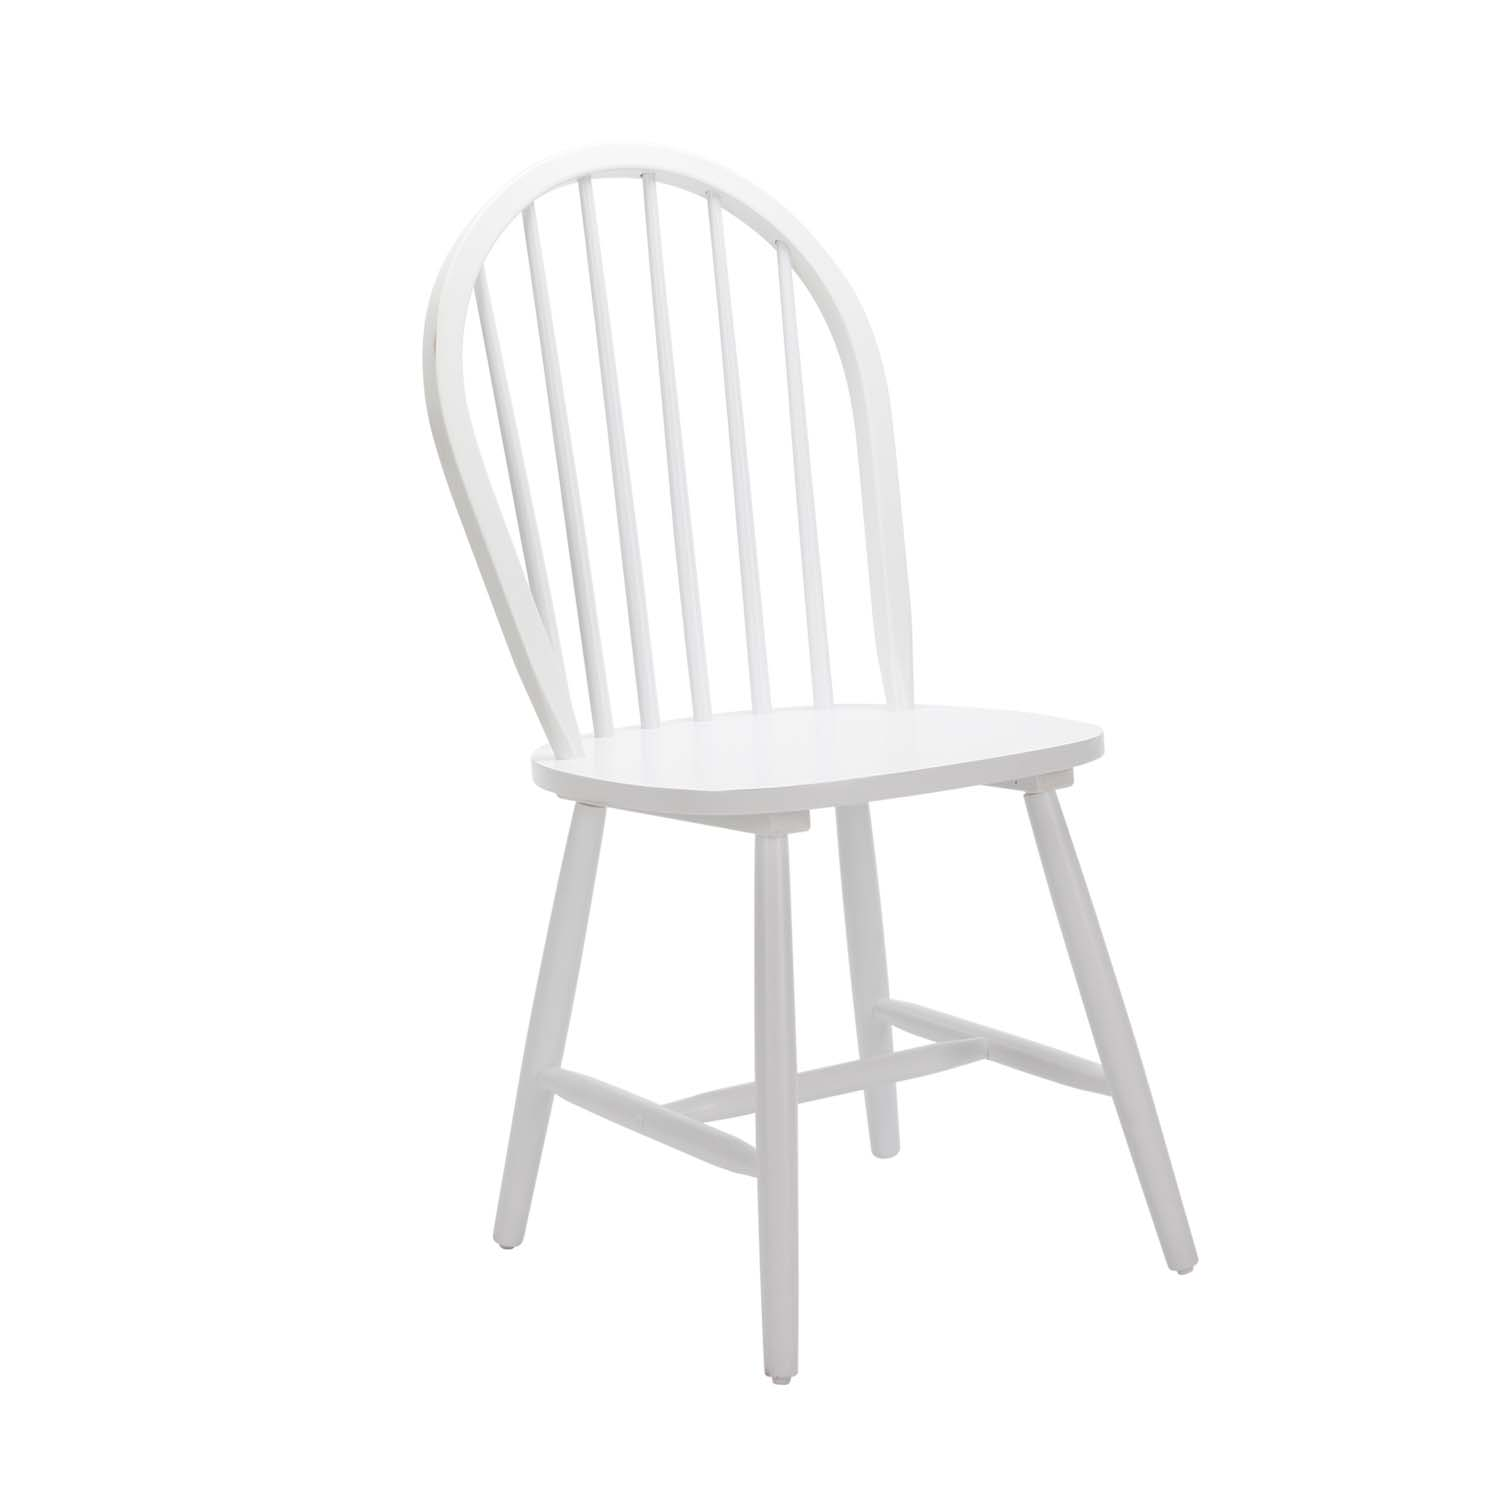 Dining Chairs Philippines Furniture Source Philippines Ruben Wood Dining Chair White